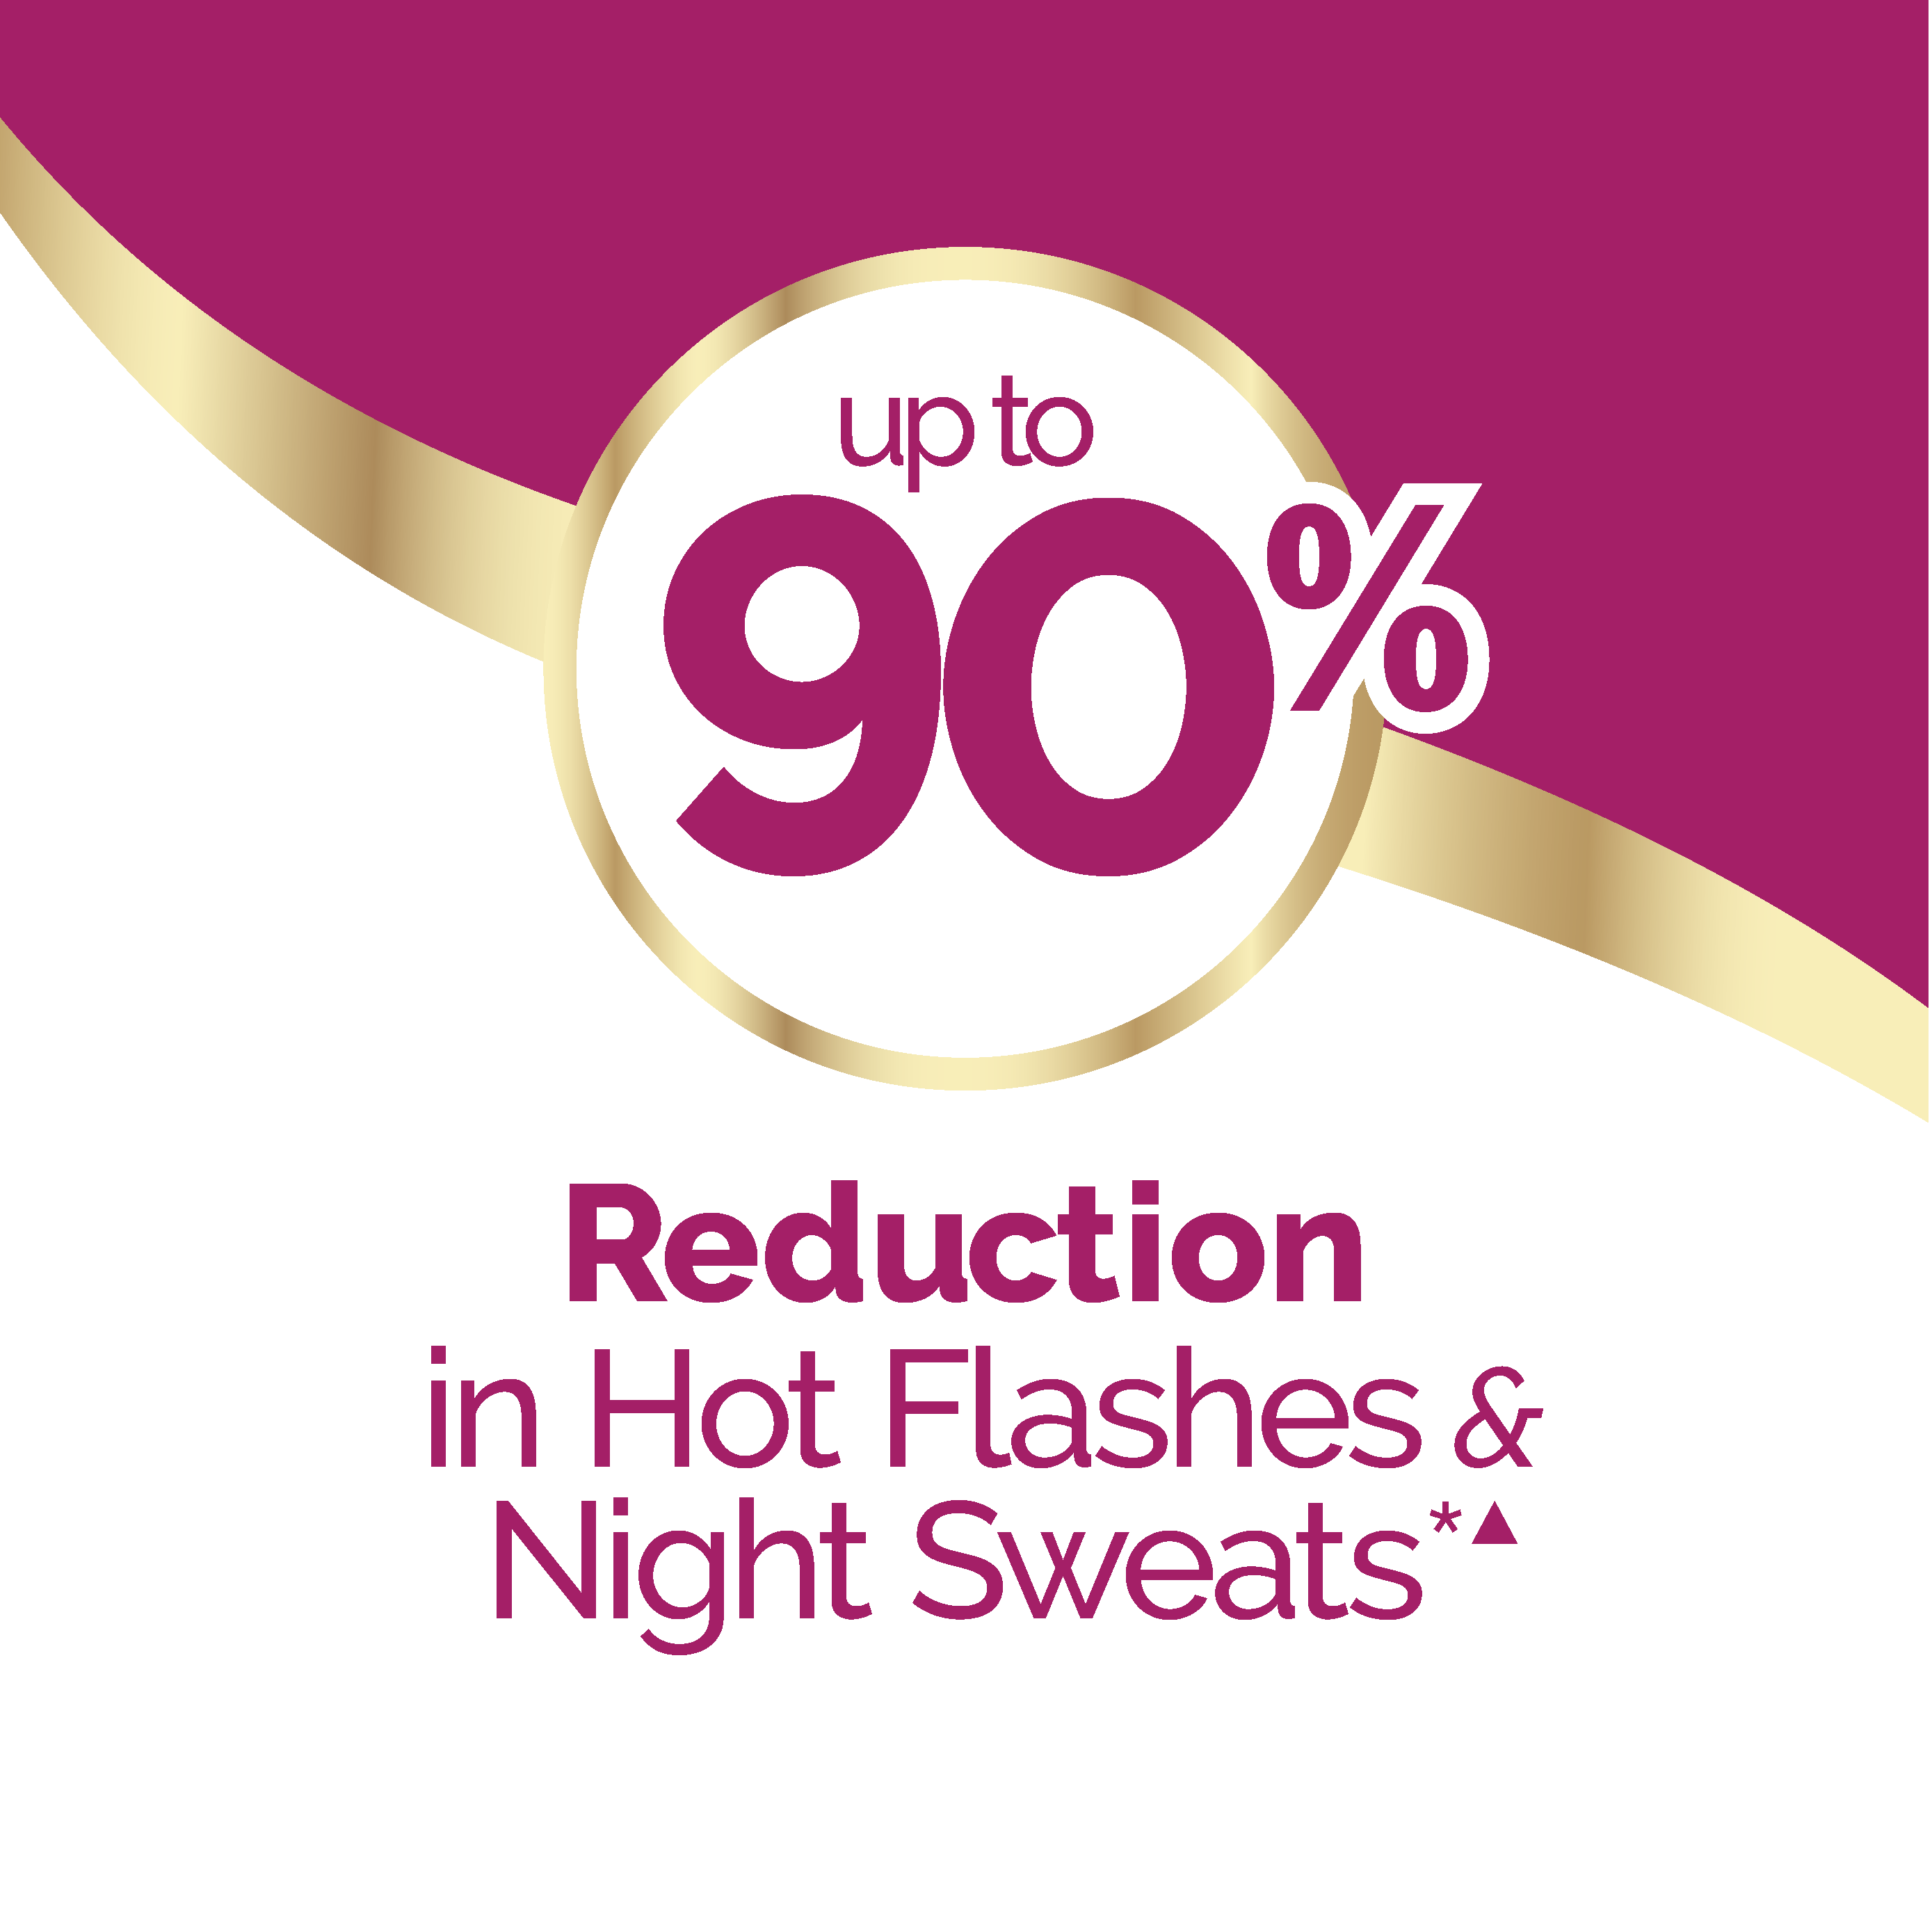 Reduction in Hot Flashes and Night Sweats Image